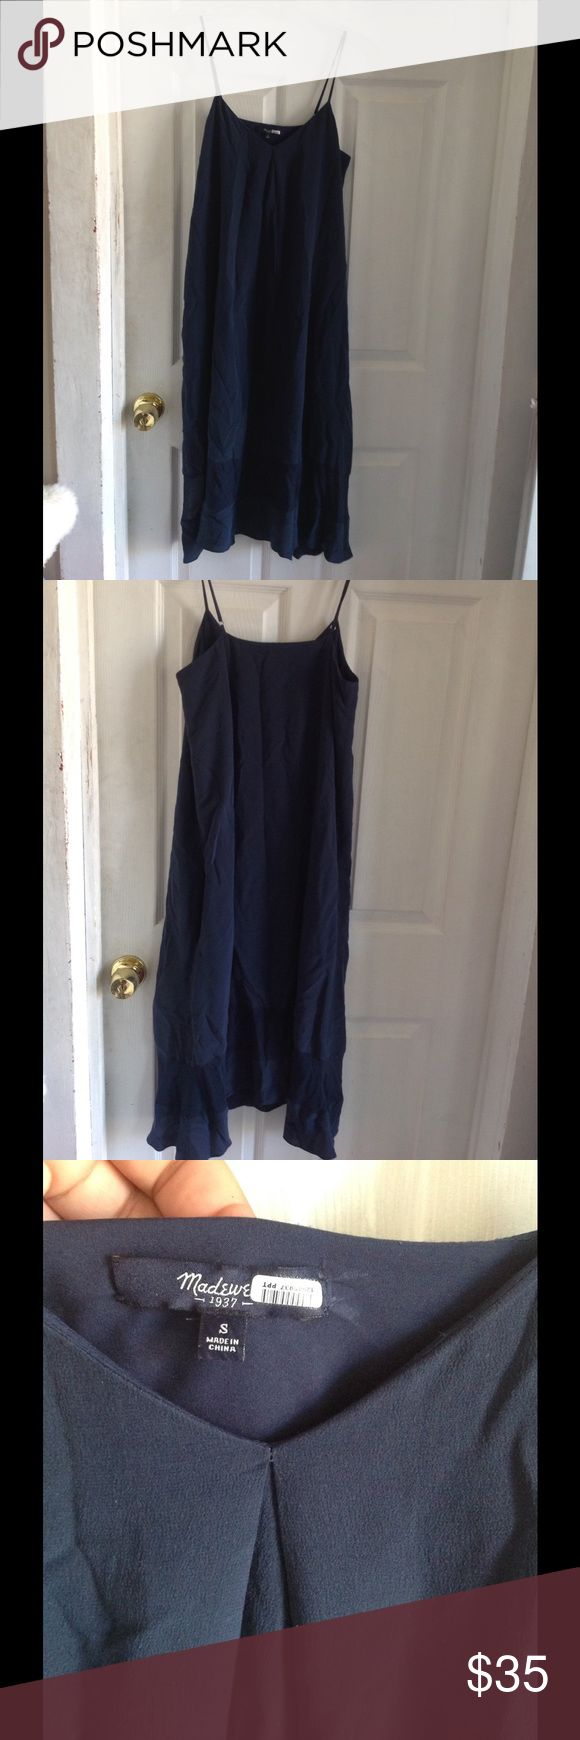 MADEWELL Dress Slip style dress. Very light. Used once. No flaws. Very Cute. 42 in long. Adjustable straps. Silk material. Madewell Dresses